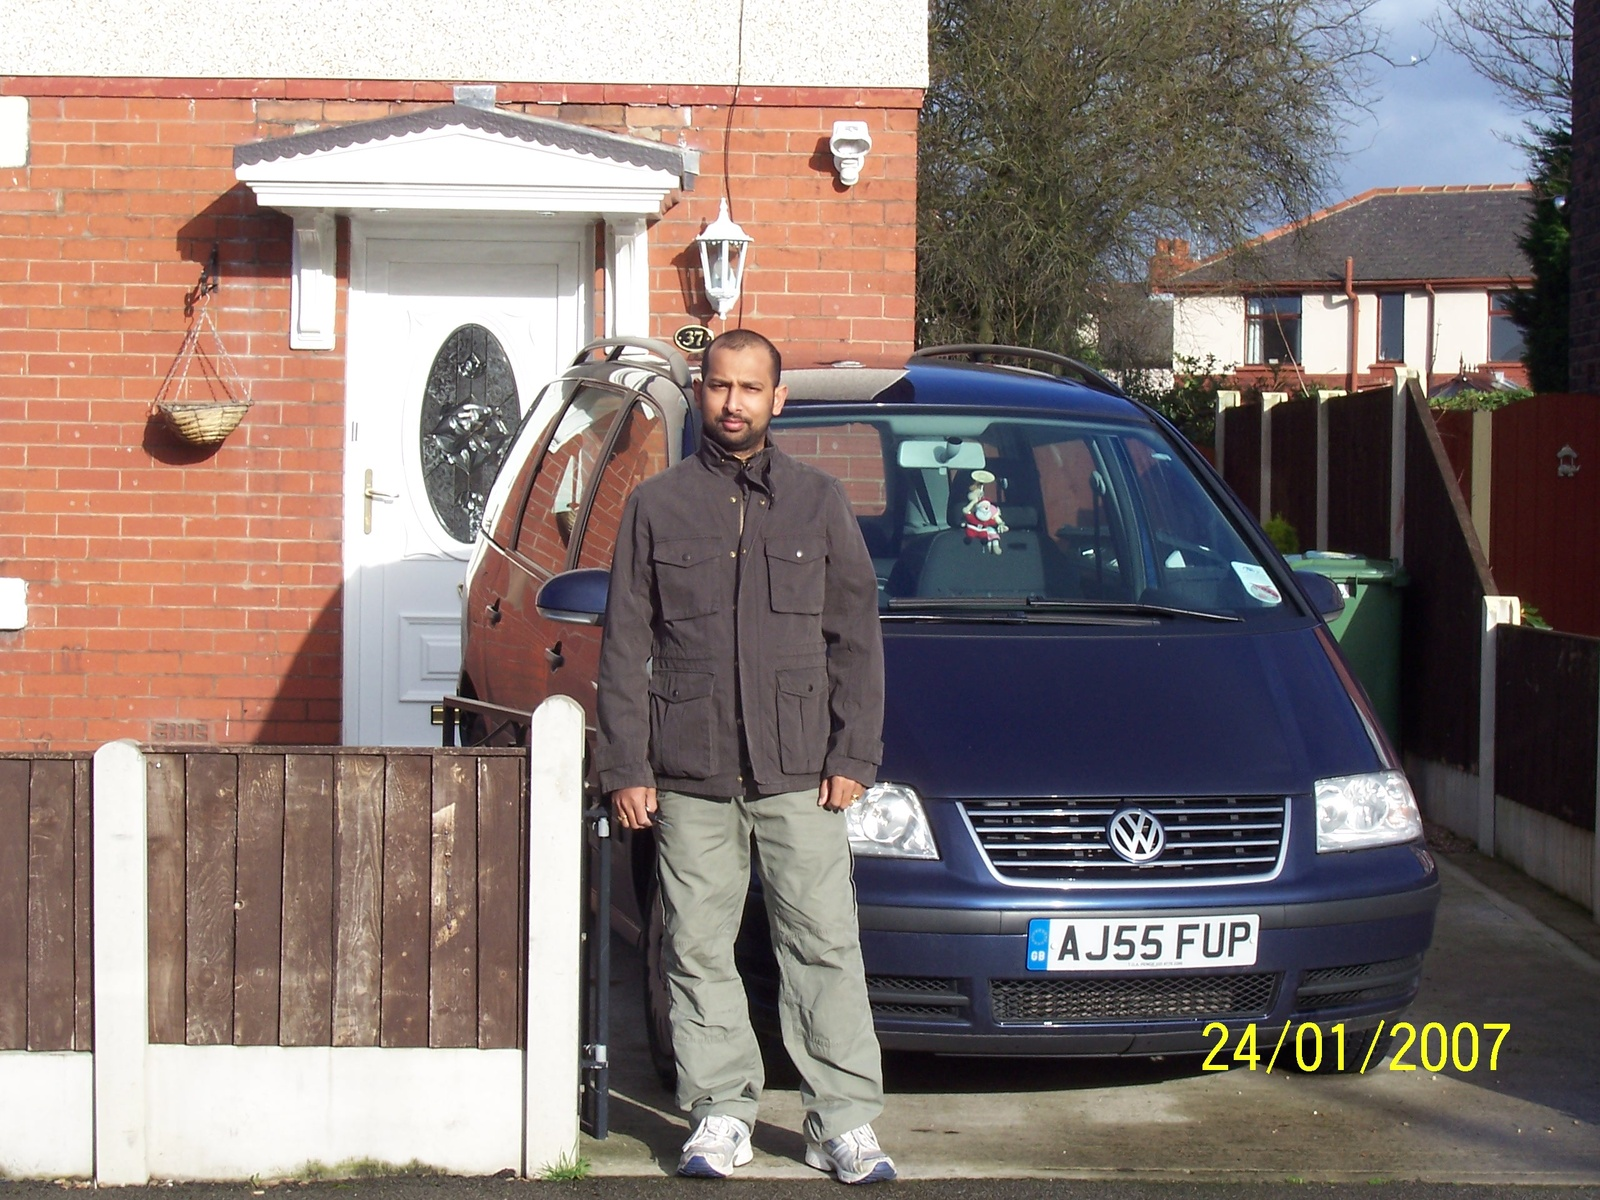 2005 Volkswagen Sharan picture